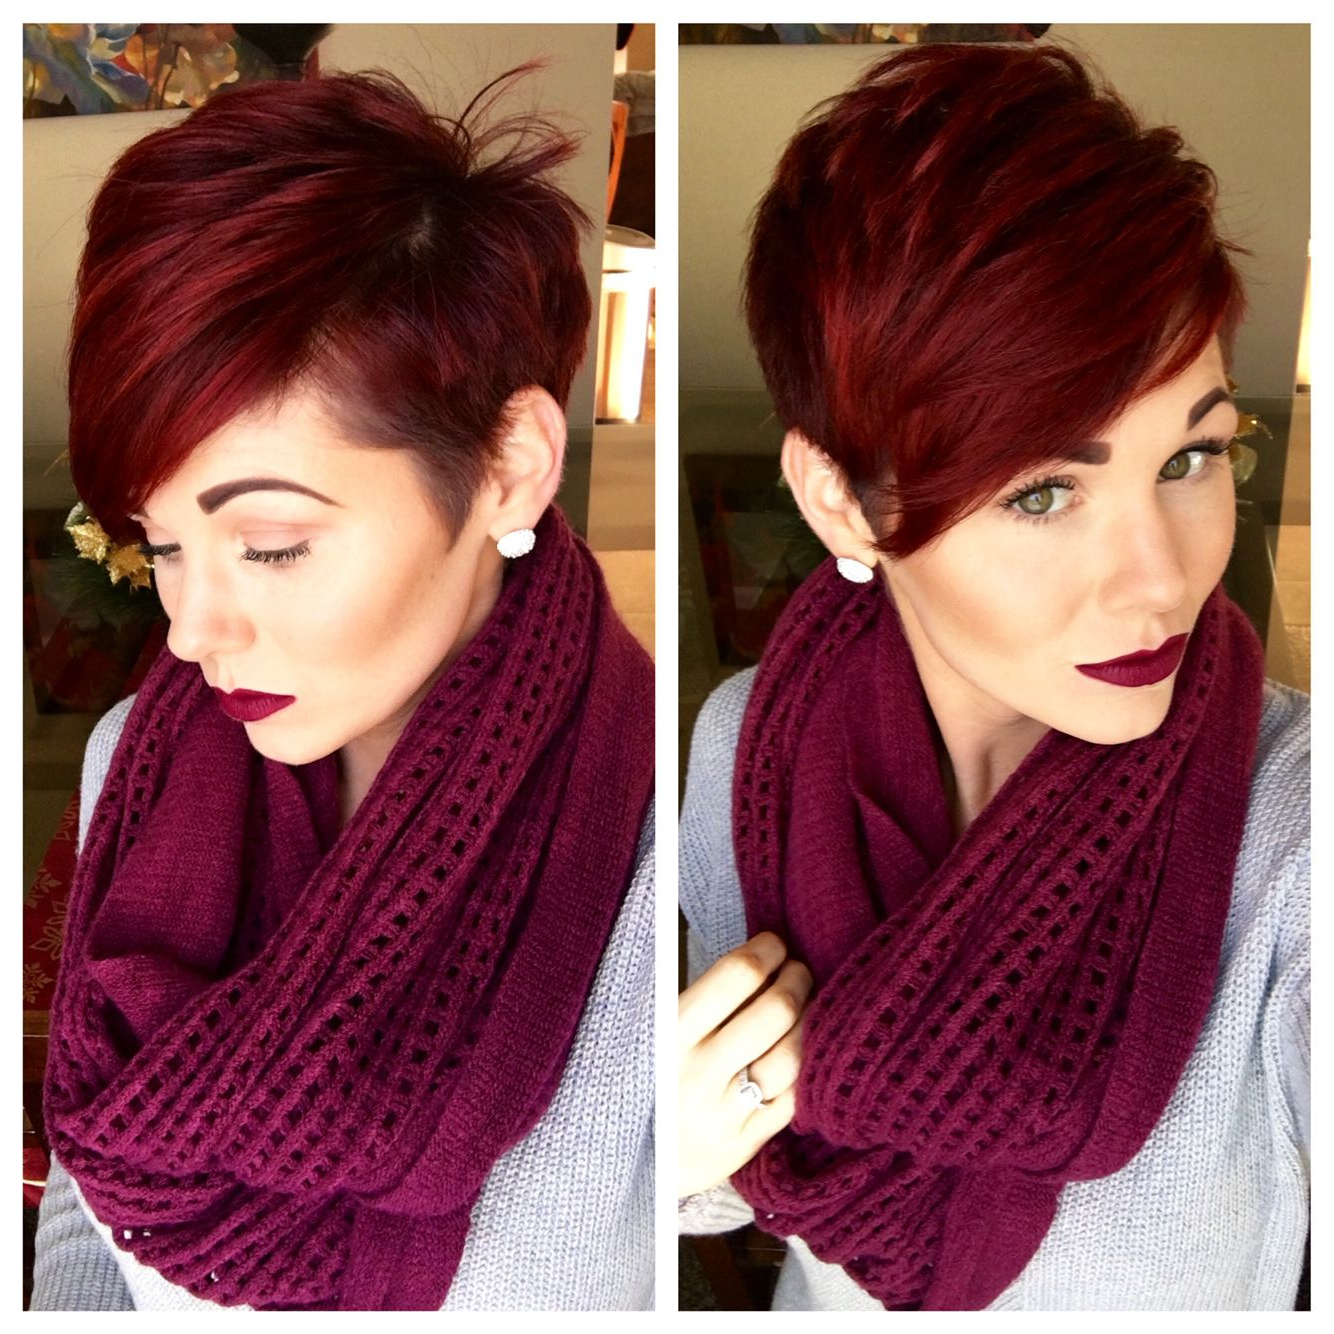 Pixie Cut And Red Violet Hair | Hairstyles/inspiration | Pinterest Regarding Edgy Purple Tinted Pixie Haircuts (View 18 of 20)